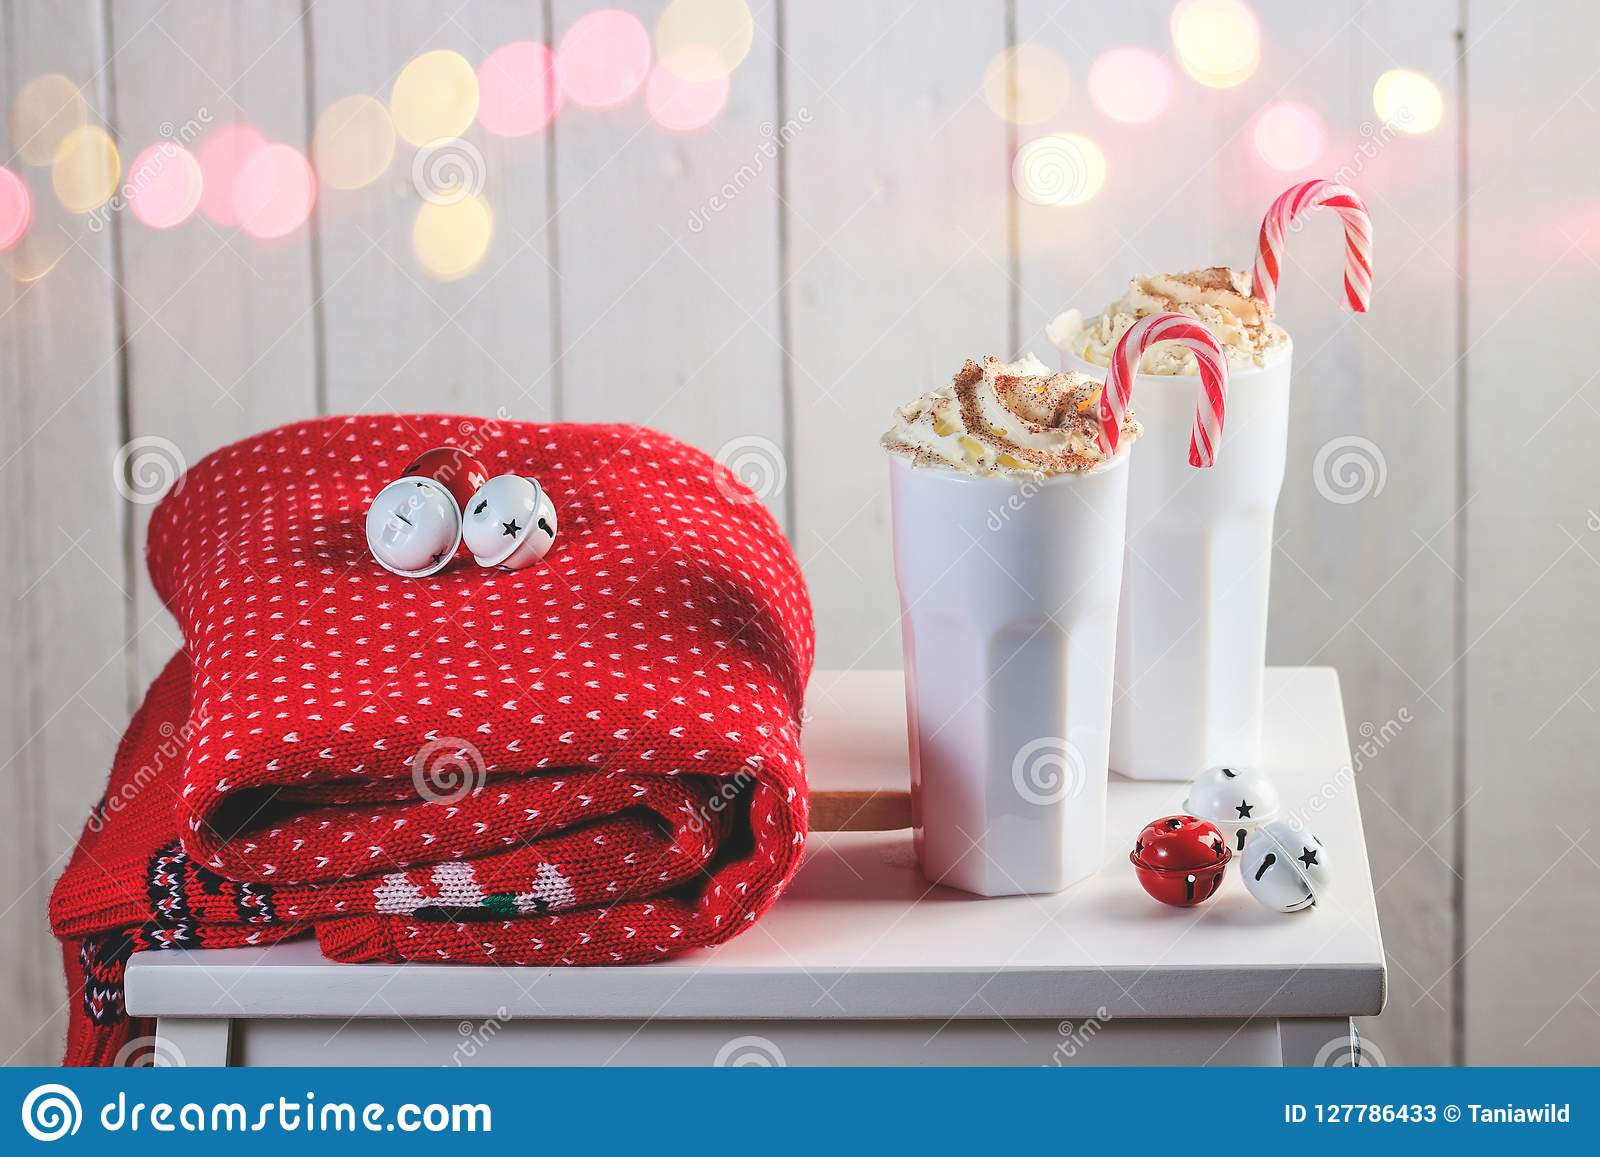 Cozy Christmas composition.Two mug with hot drinks, chocolate with whipped cream and Candy Canes in front of a light wooden backgr